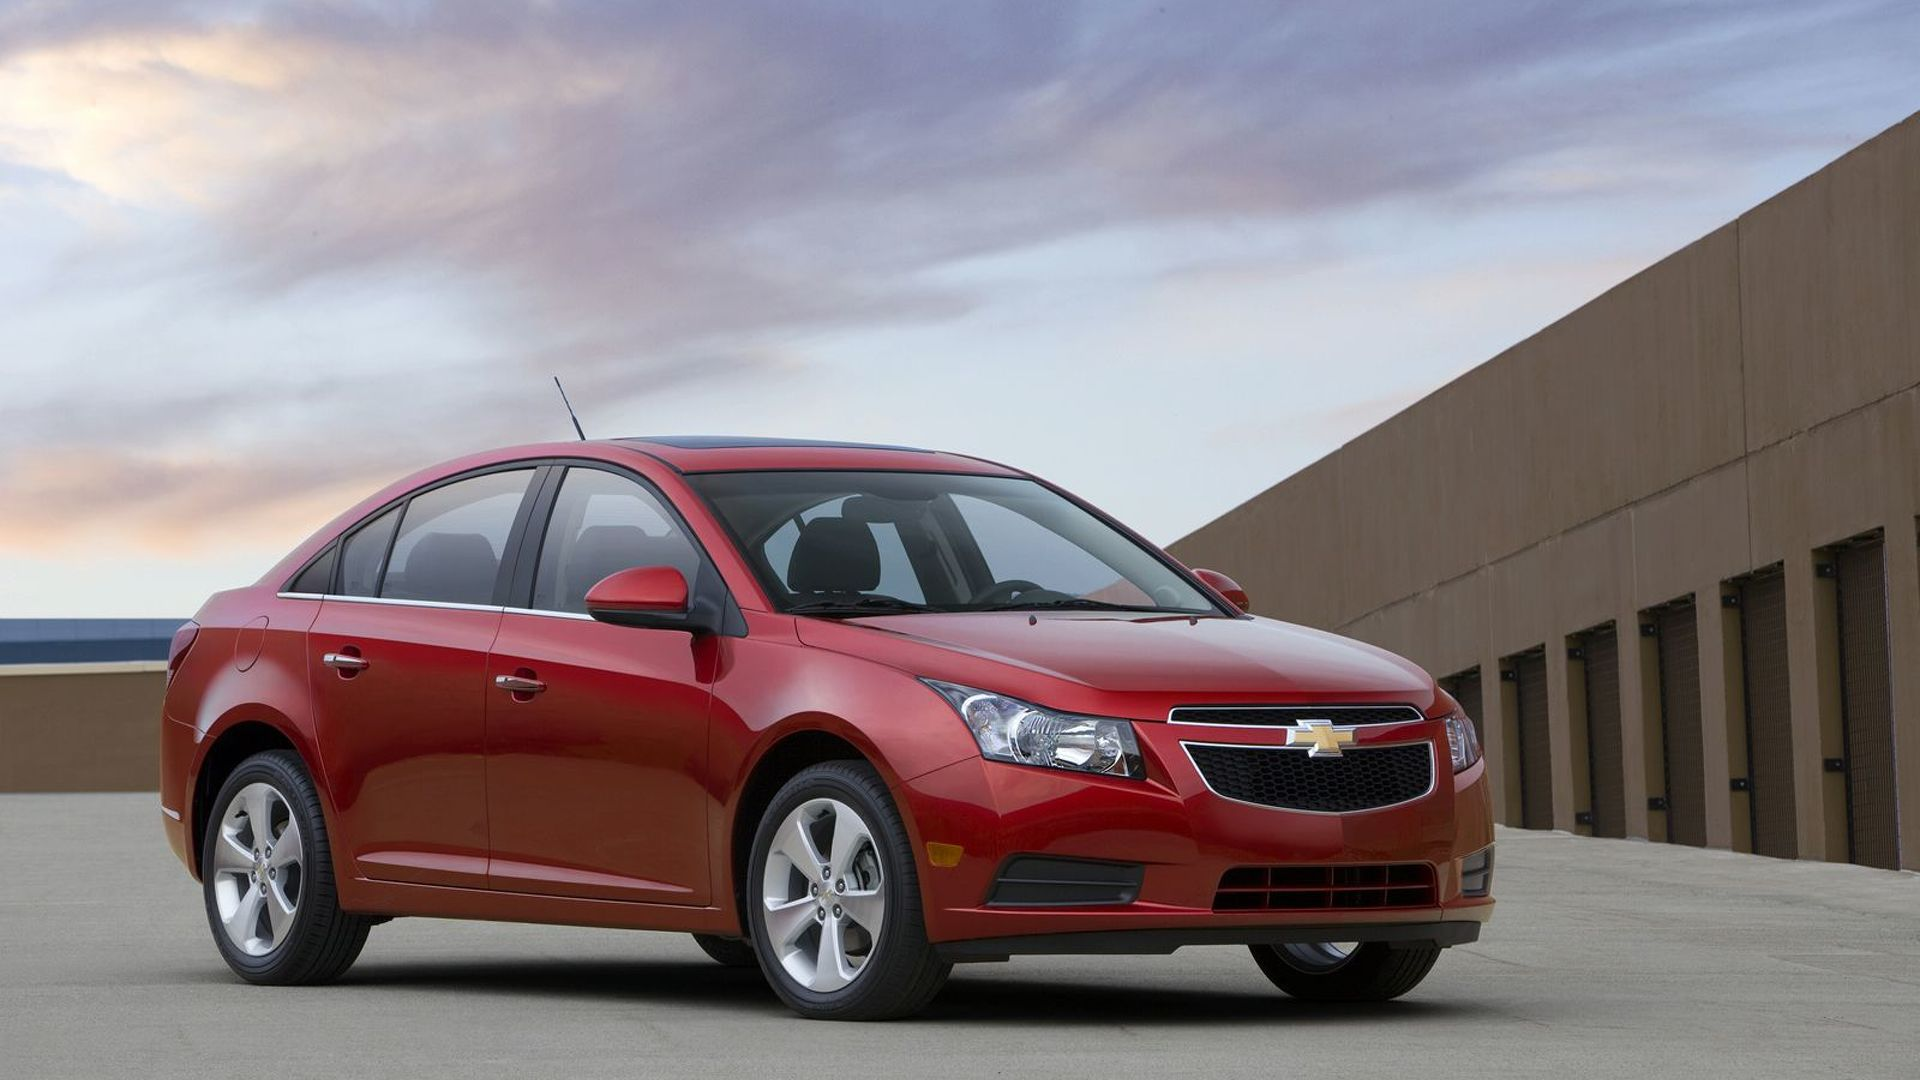 2013 Chevy Cruze to offer a diesel in U.S. - report